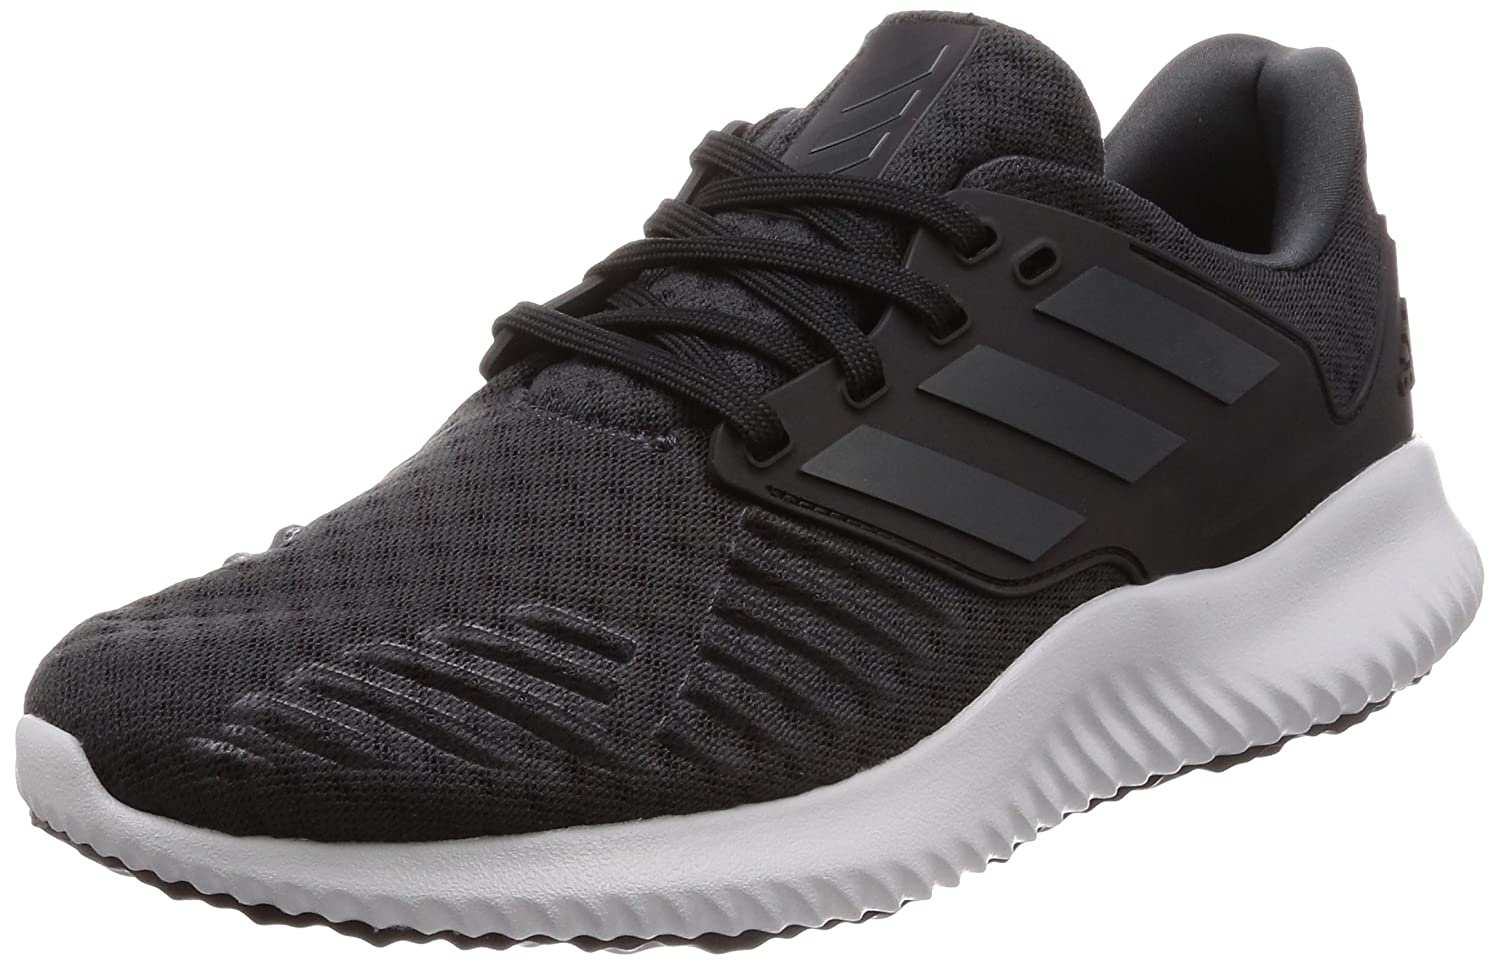 the latest e21a4 e5ab1 adidas Menss Alphabounce Rc.2 M Fitness Shoes Amazon.co.uk Shoes  Bags